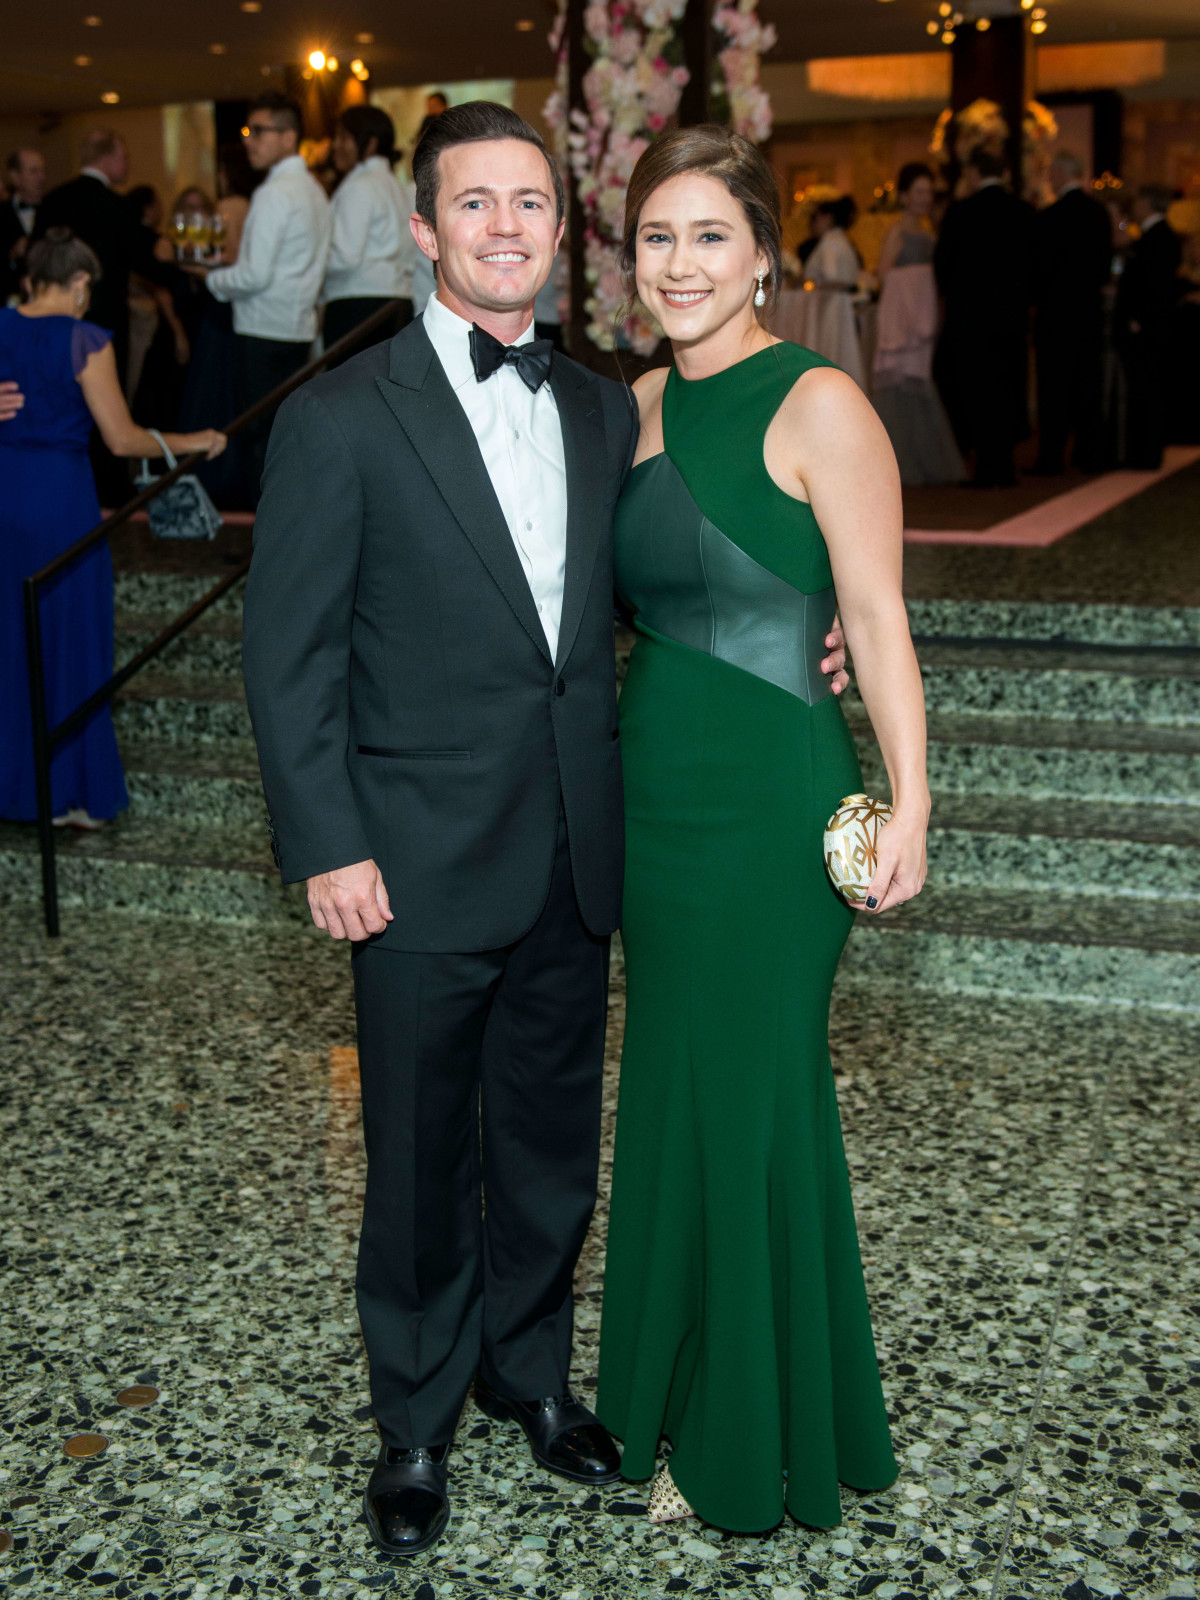 Krystal Thompson, Garrett Thompson at Museum of Fine Arts Gala